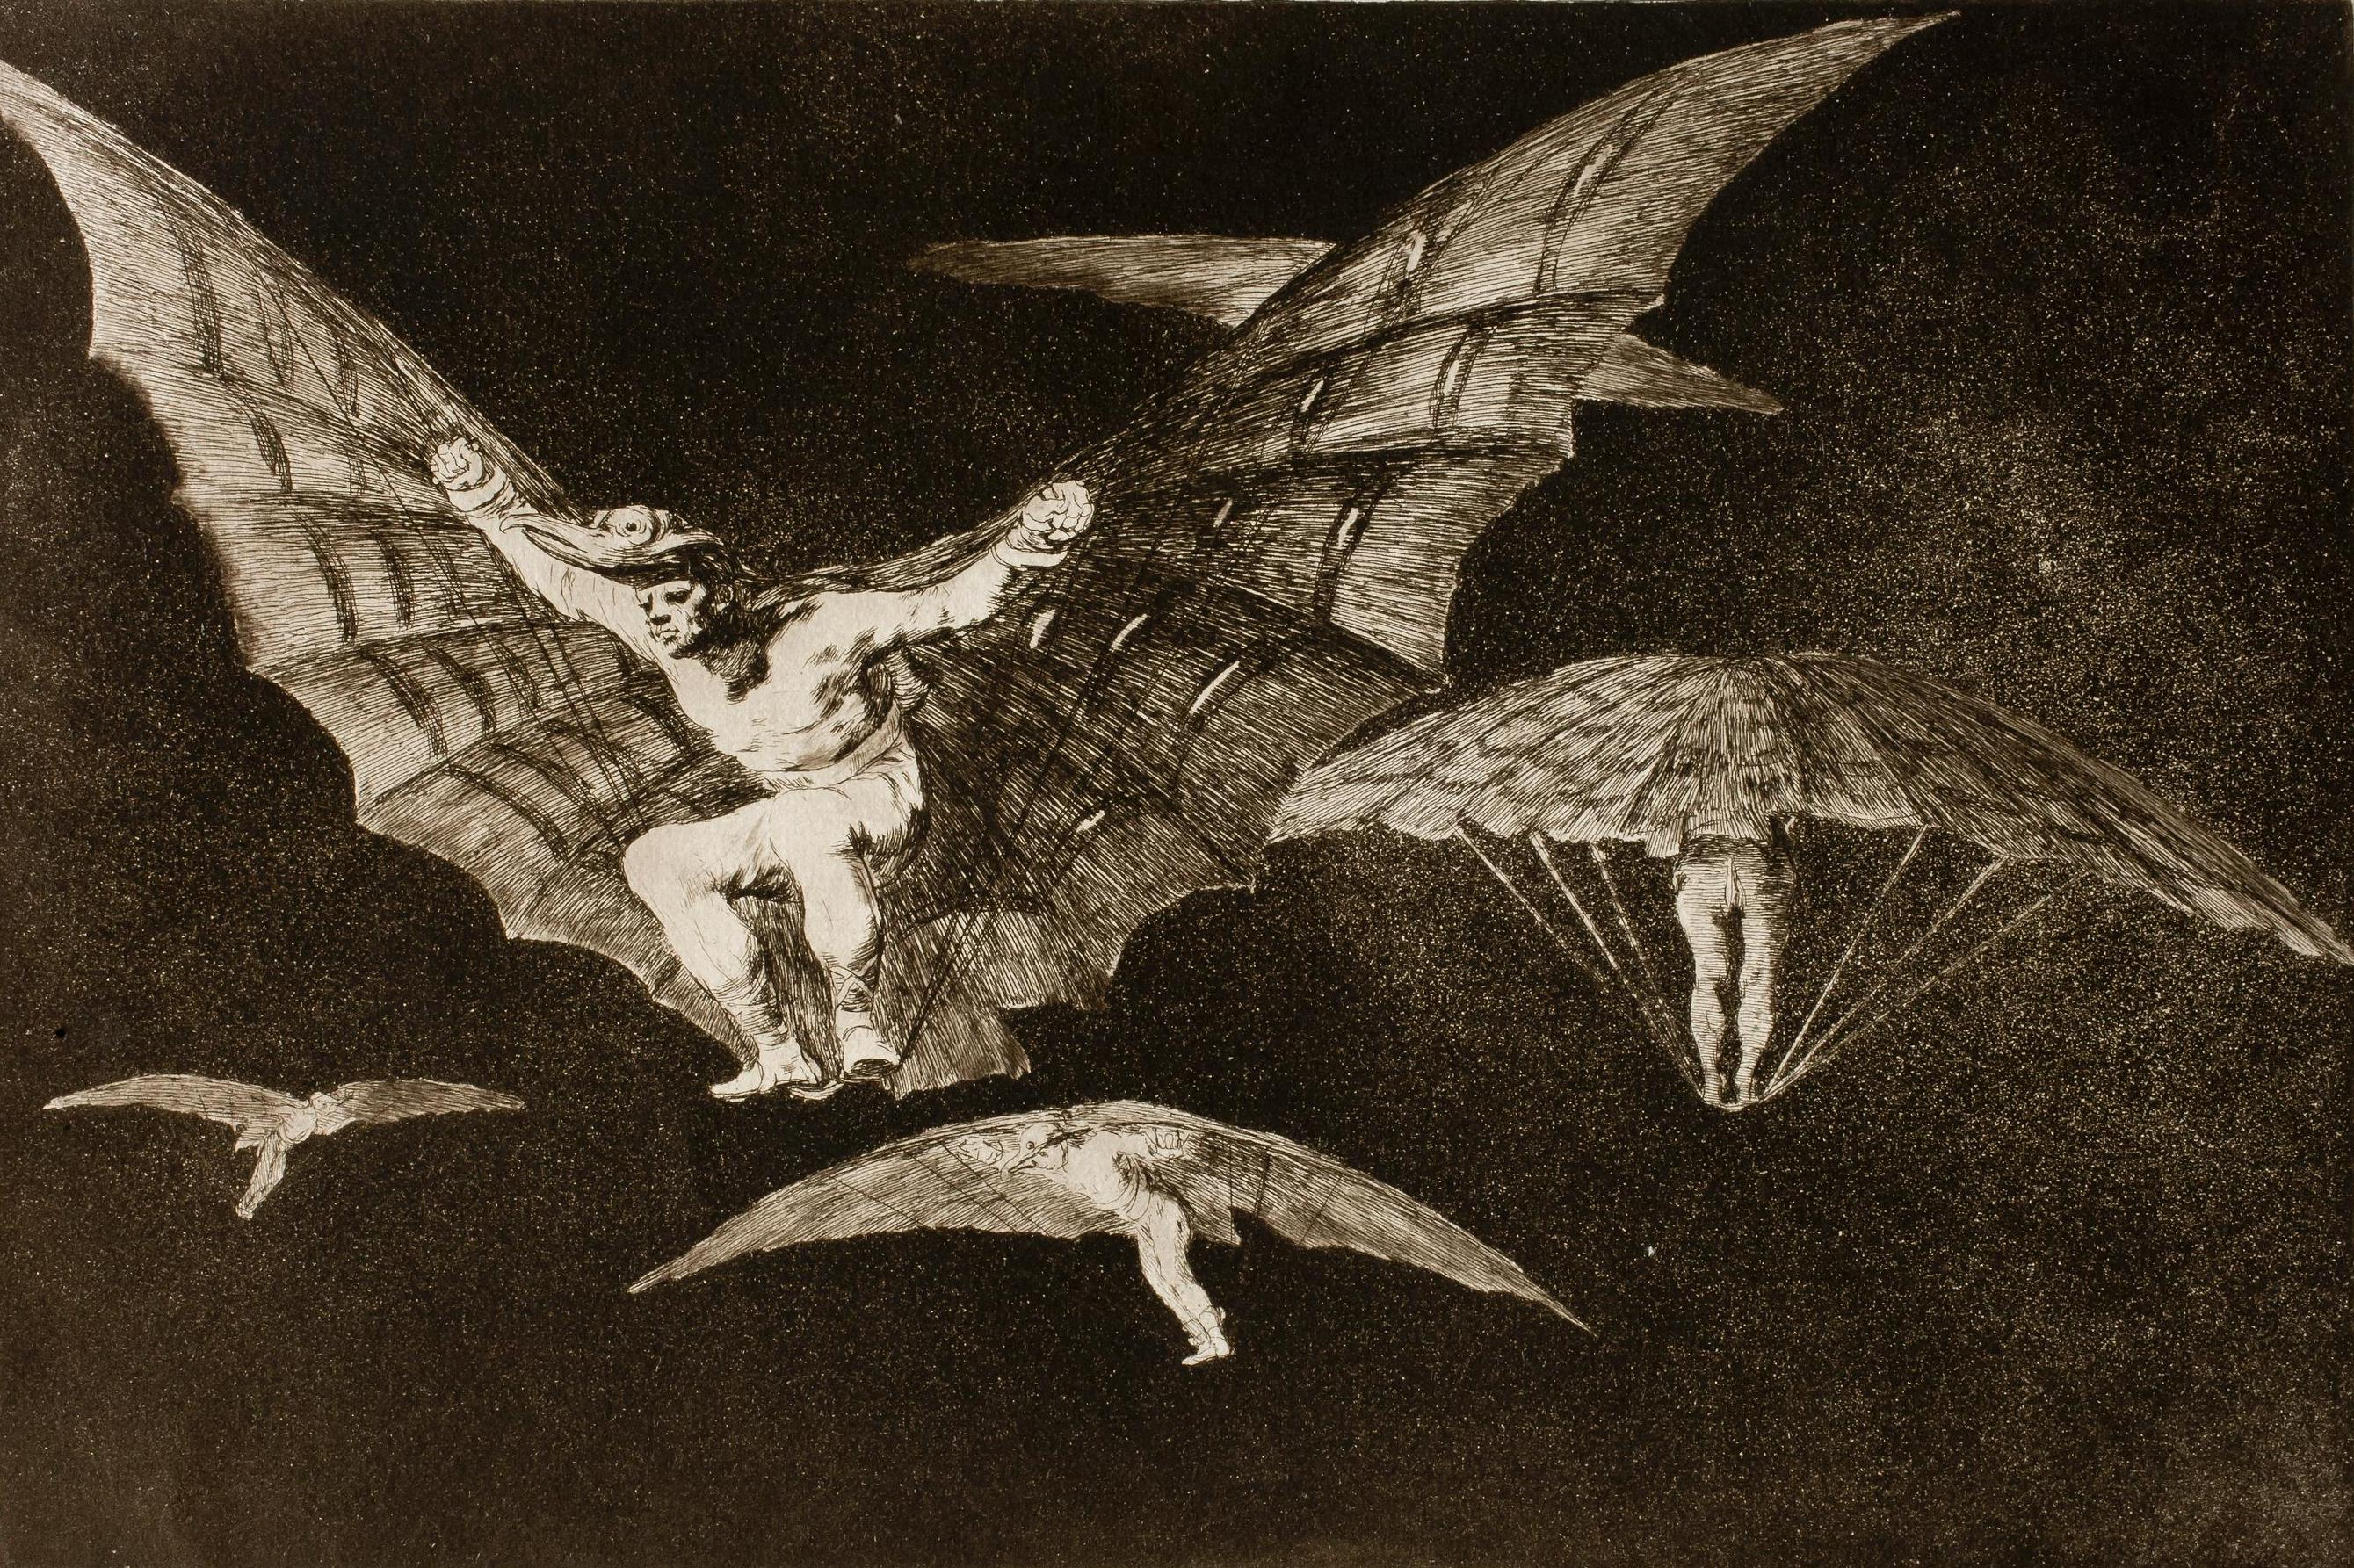 Goya. Disparate n.º 13. Modo de volar. 1815-1823.